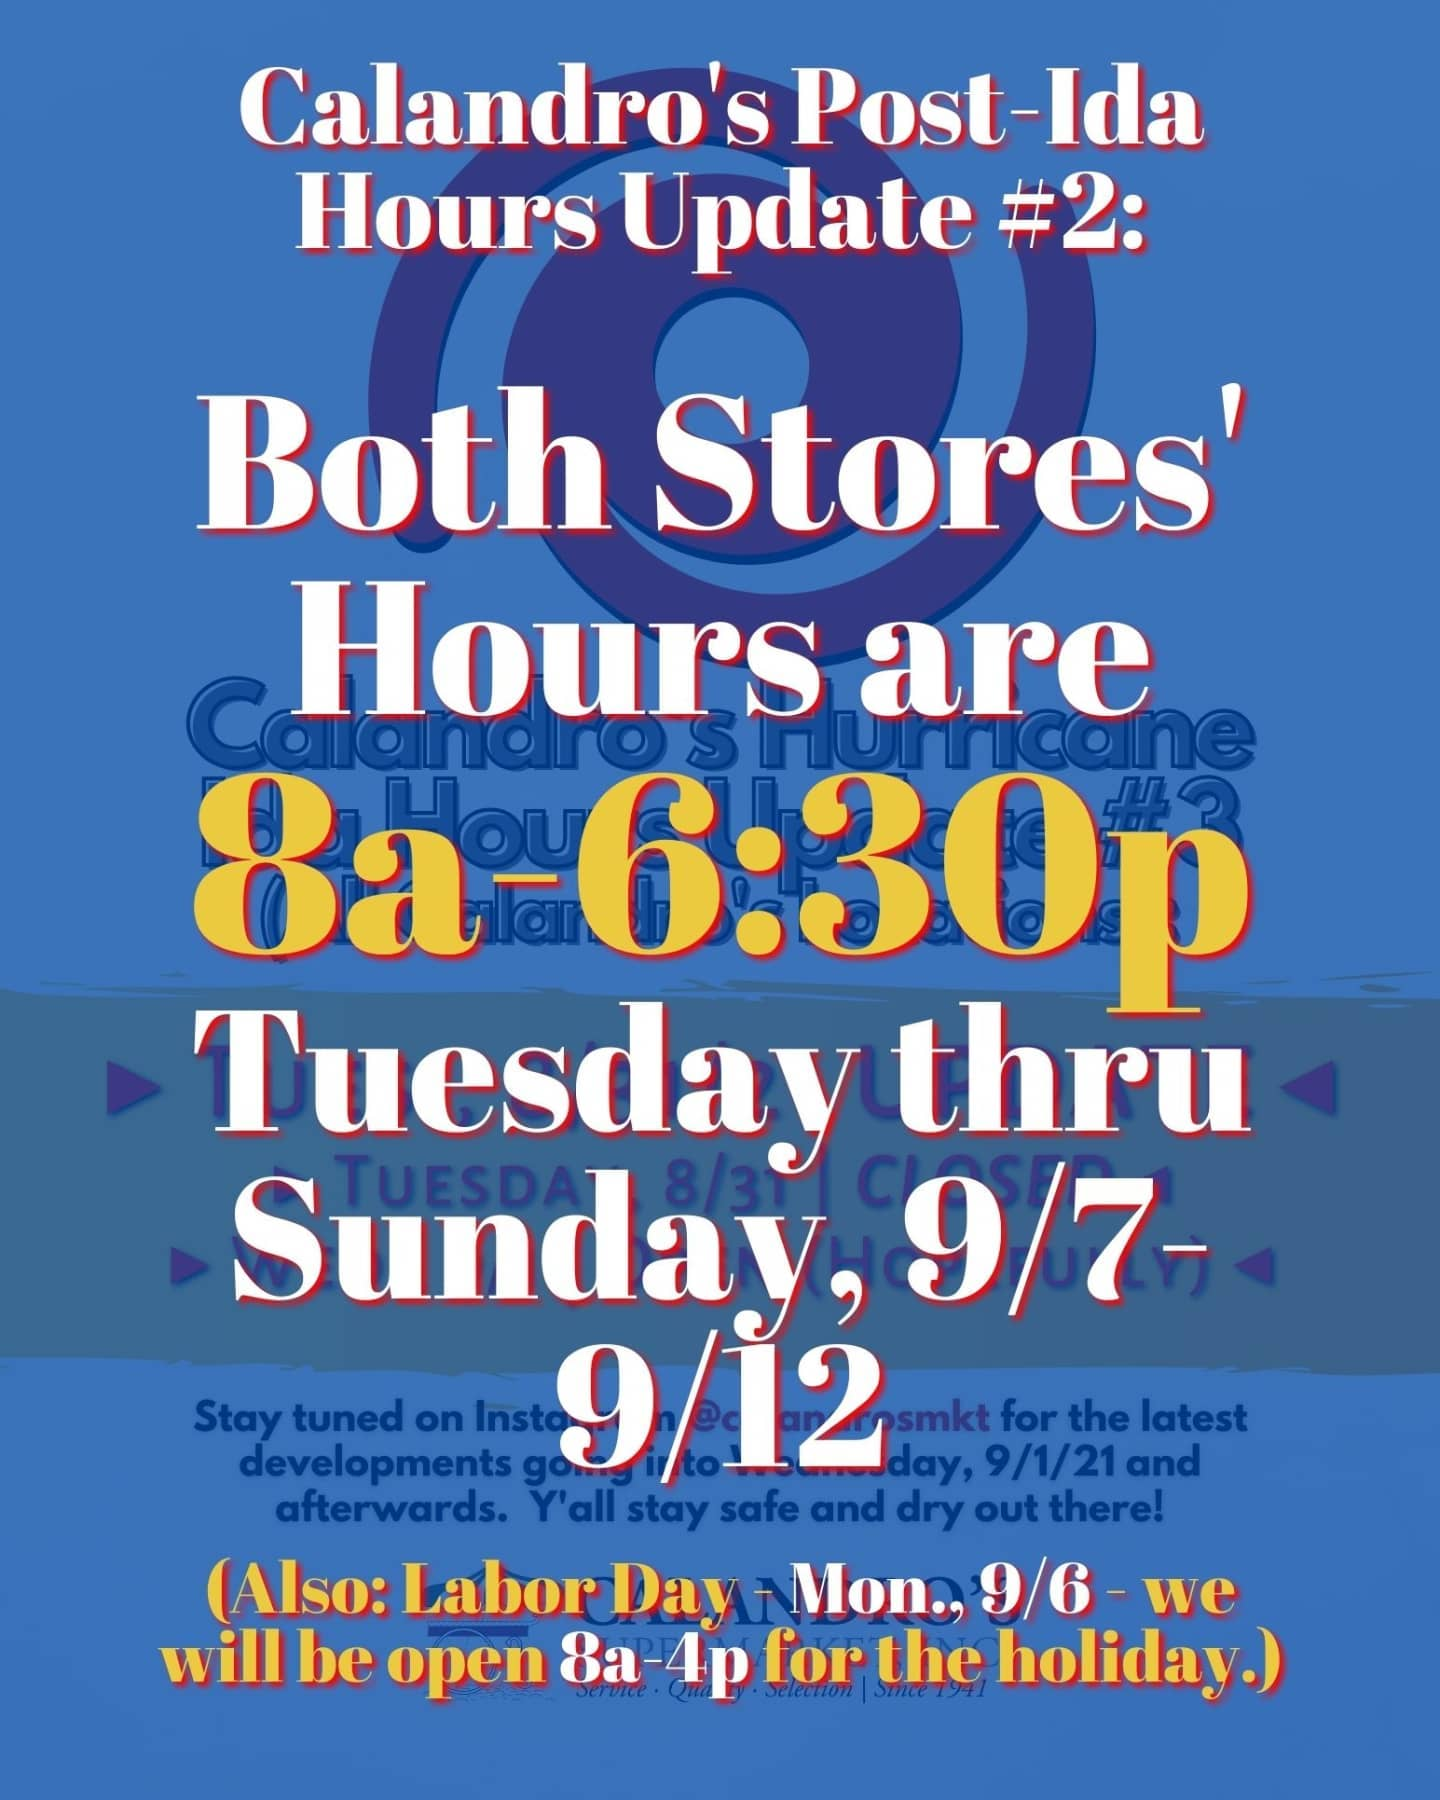 Another (hopefully the last) Calandro's Hurricane Hours Update…  6:30p closings through this Sunday (9/12).